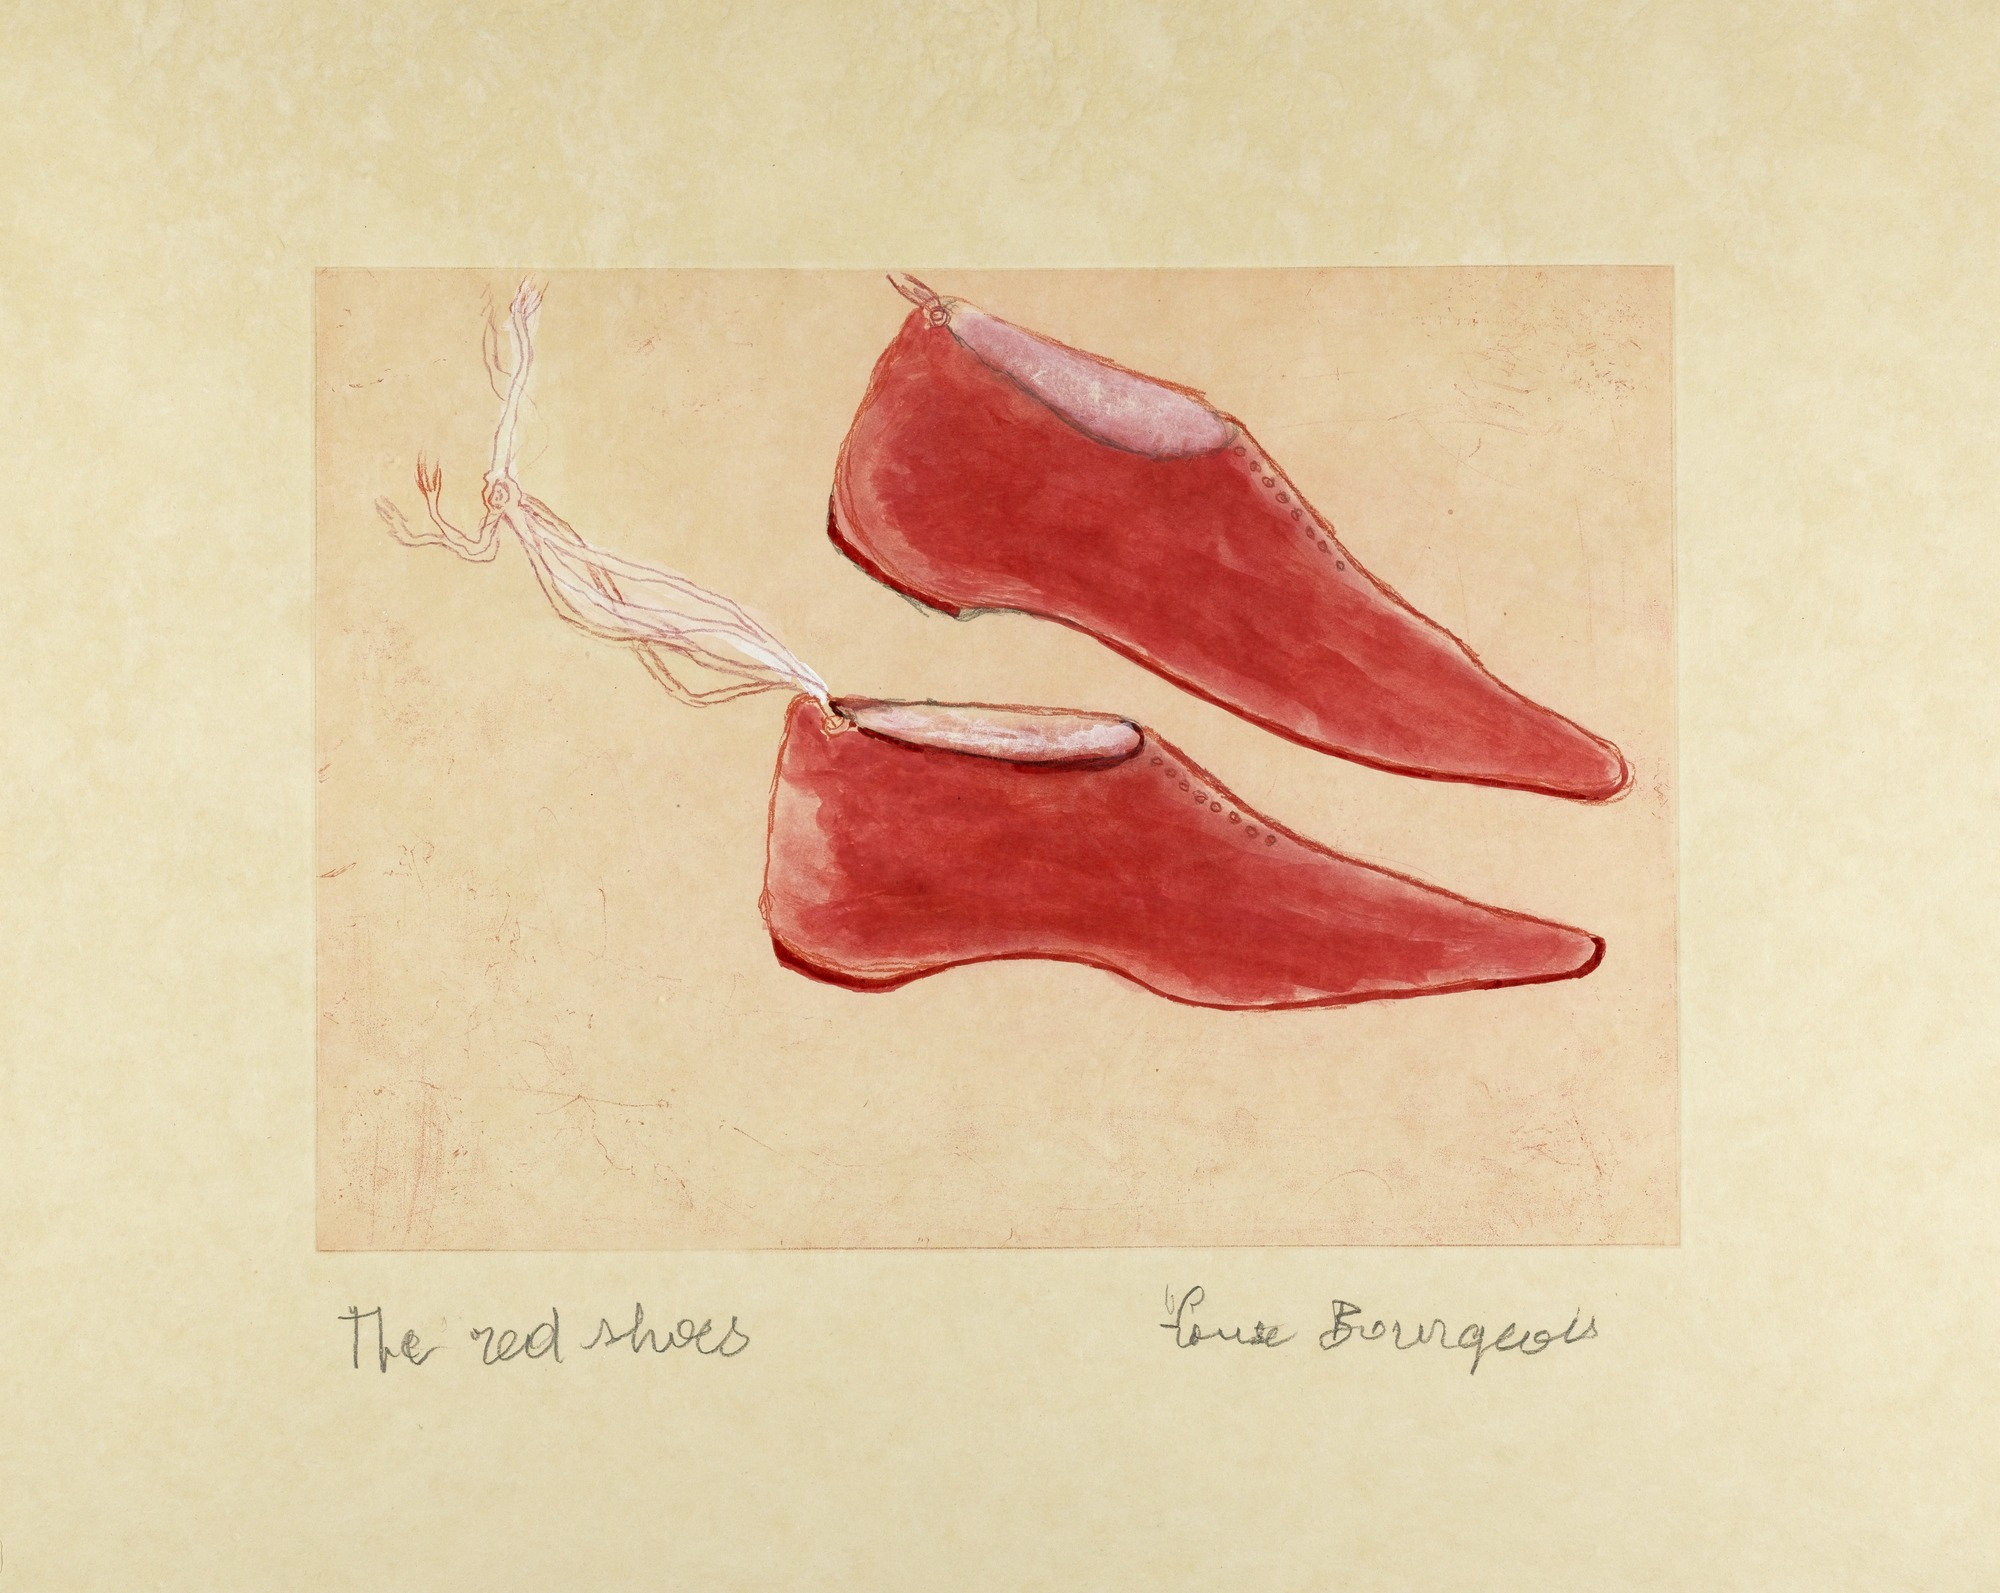 Louise Bourgeois, 'The Red Shoes,' 2005. Courtesy of the Museum of Modern Art.